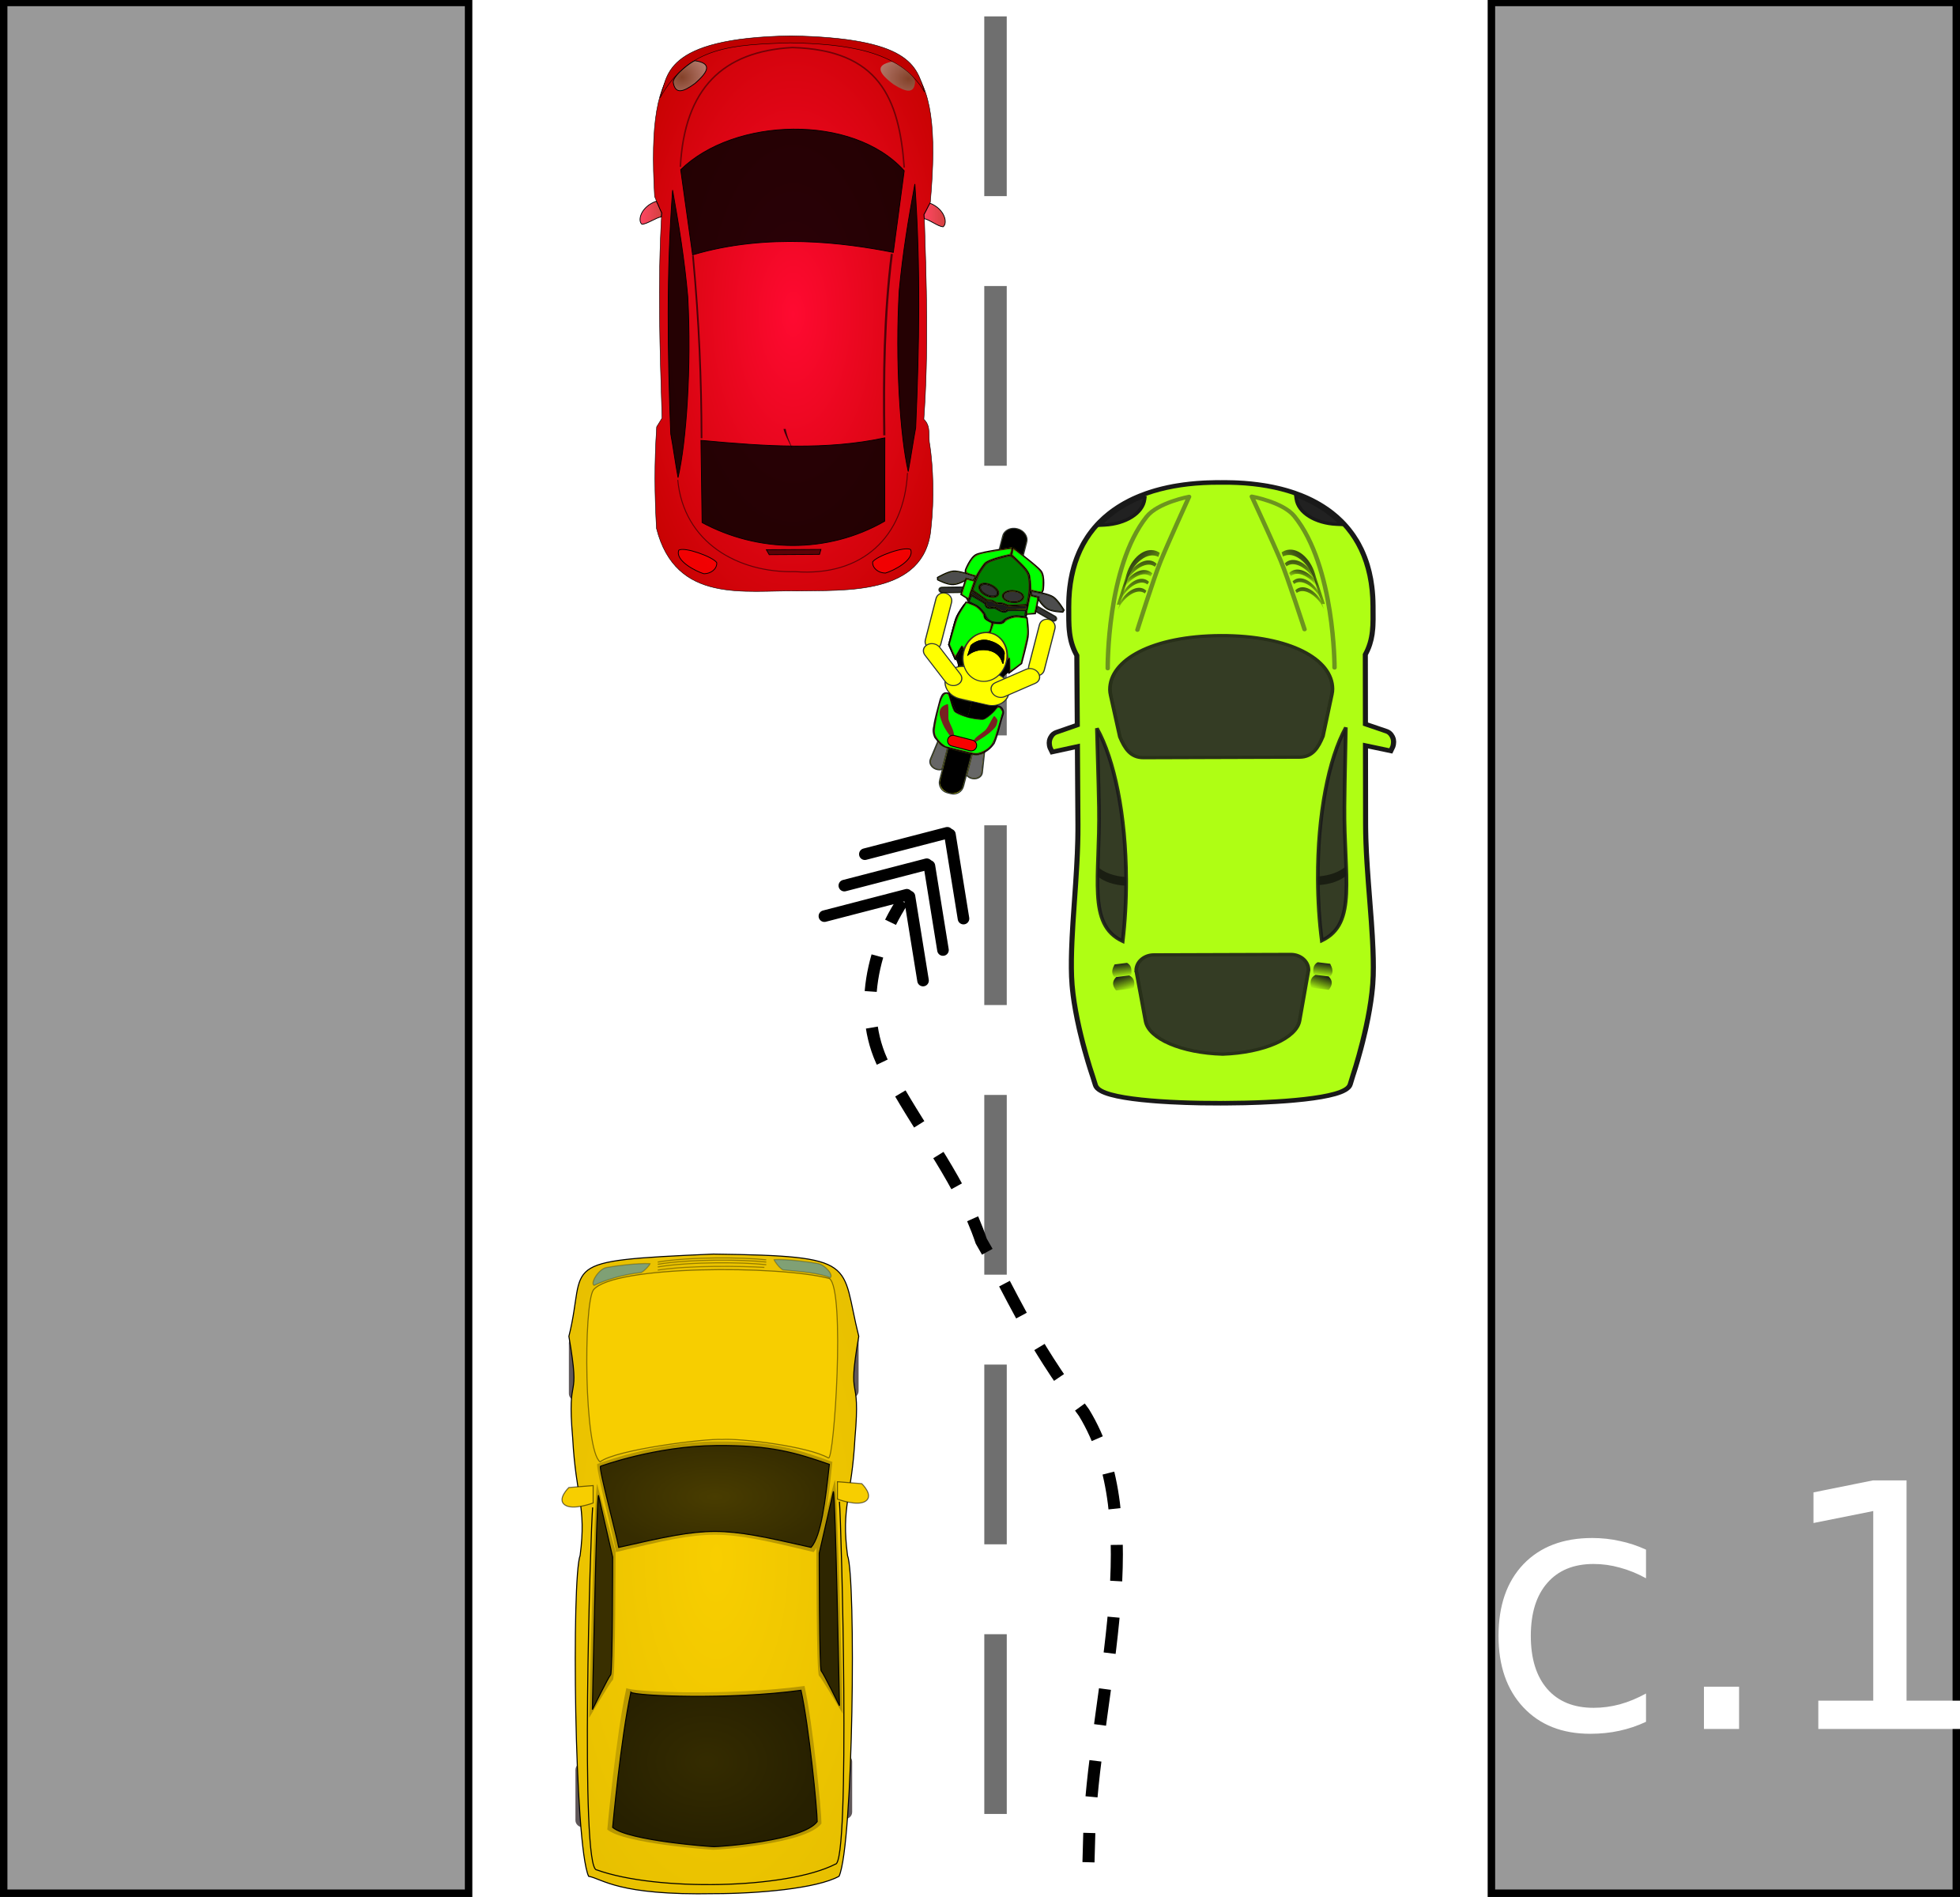 traffic accident pictograms c.1 by Gusta